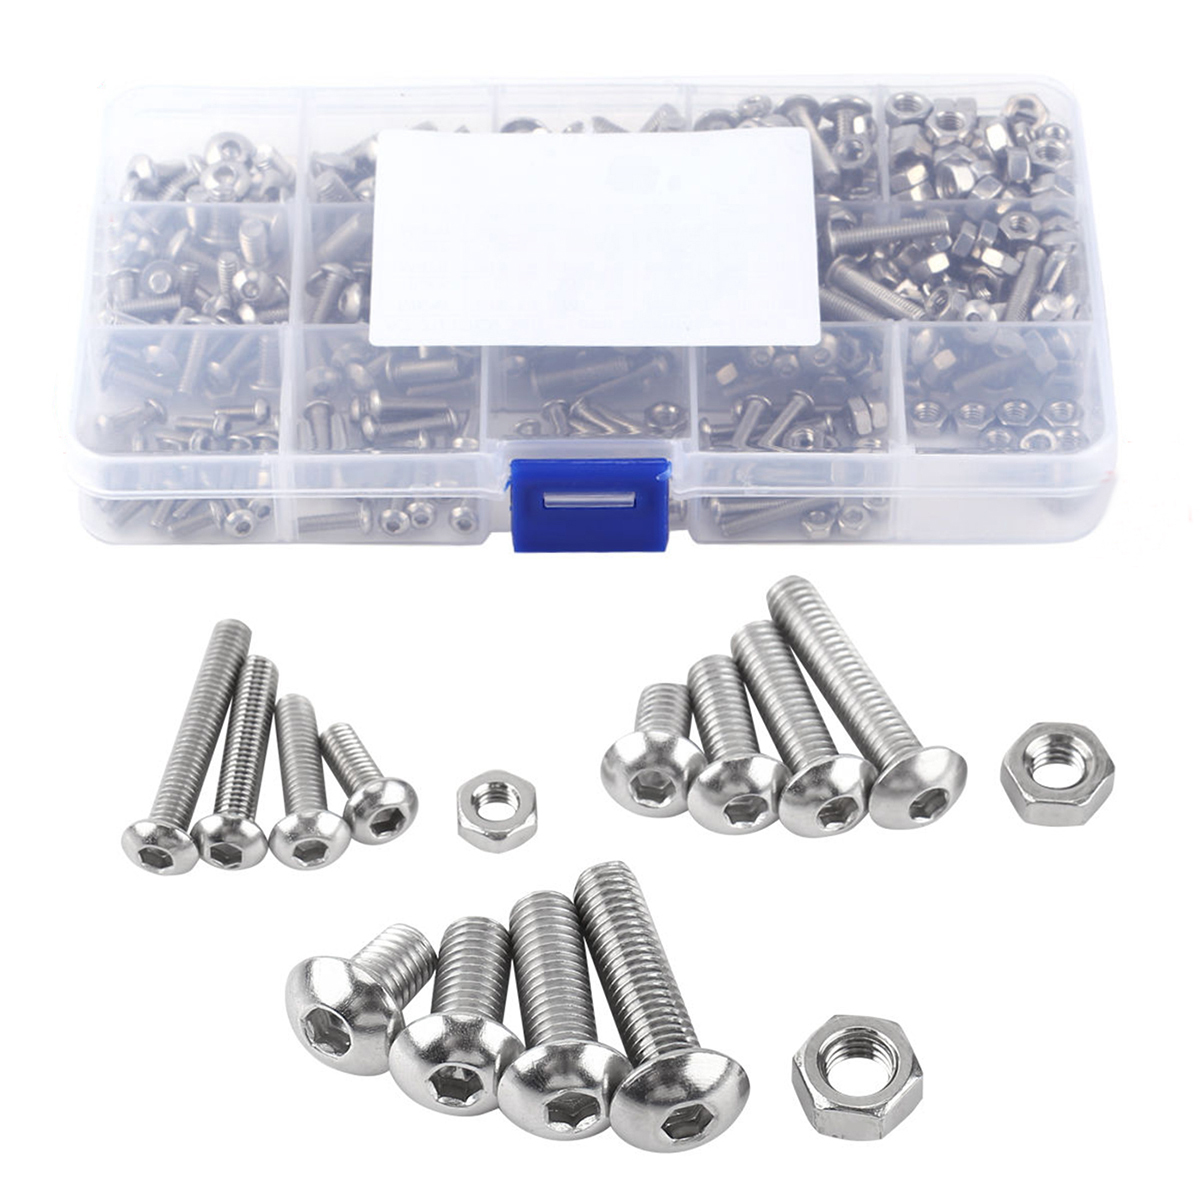 440pcs Assorted 304 Stainless Steel Screws M3 M4 M5 Hex Socket Button Head Bolts Screw Nuts Set 10pcs din7380 button head socket cap screw 304 stainless steel round pan head screws m5 30mm